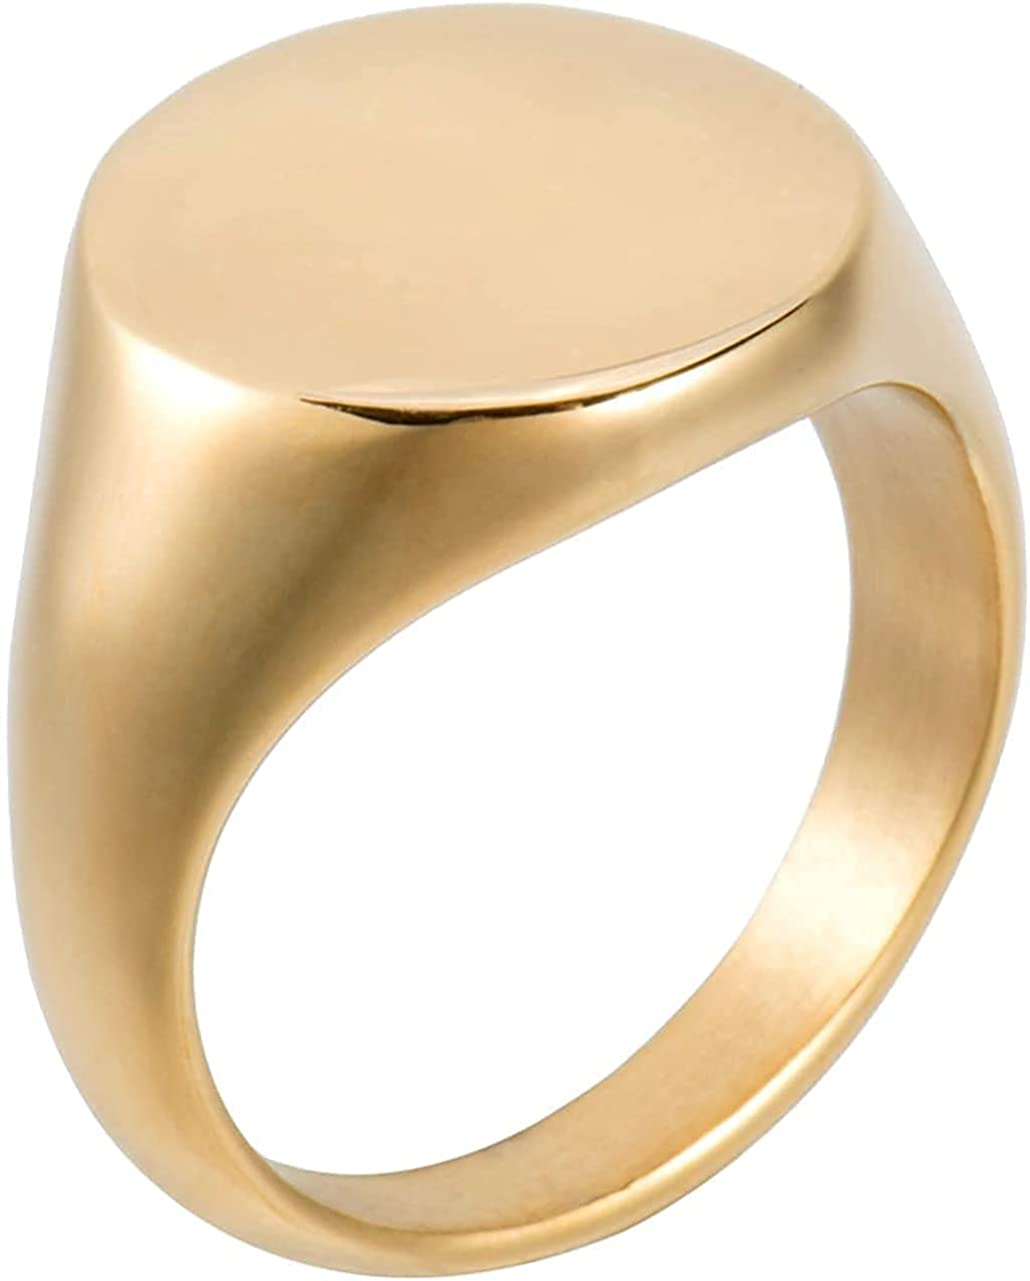 Aurelia Mae 18K Gold Plated Big Oval Signet Ring Chunky Gold Ring Womens Large Statement Chevalier Ring